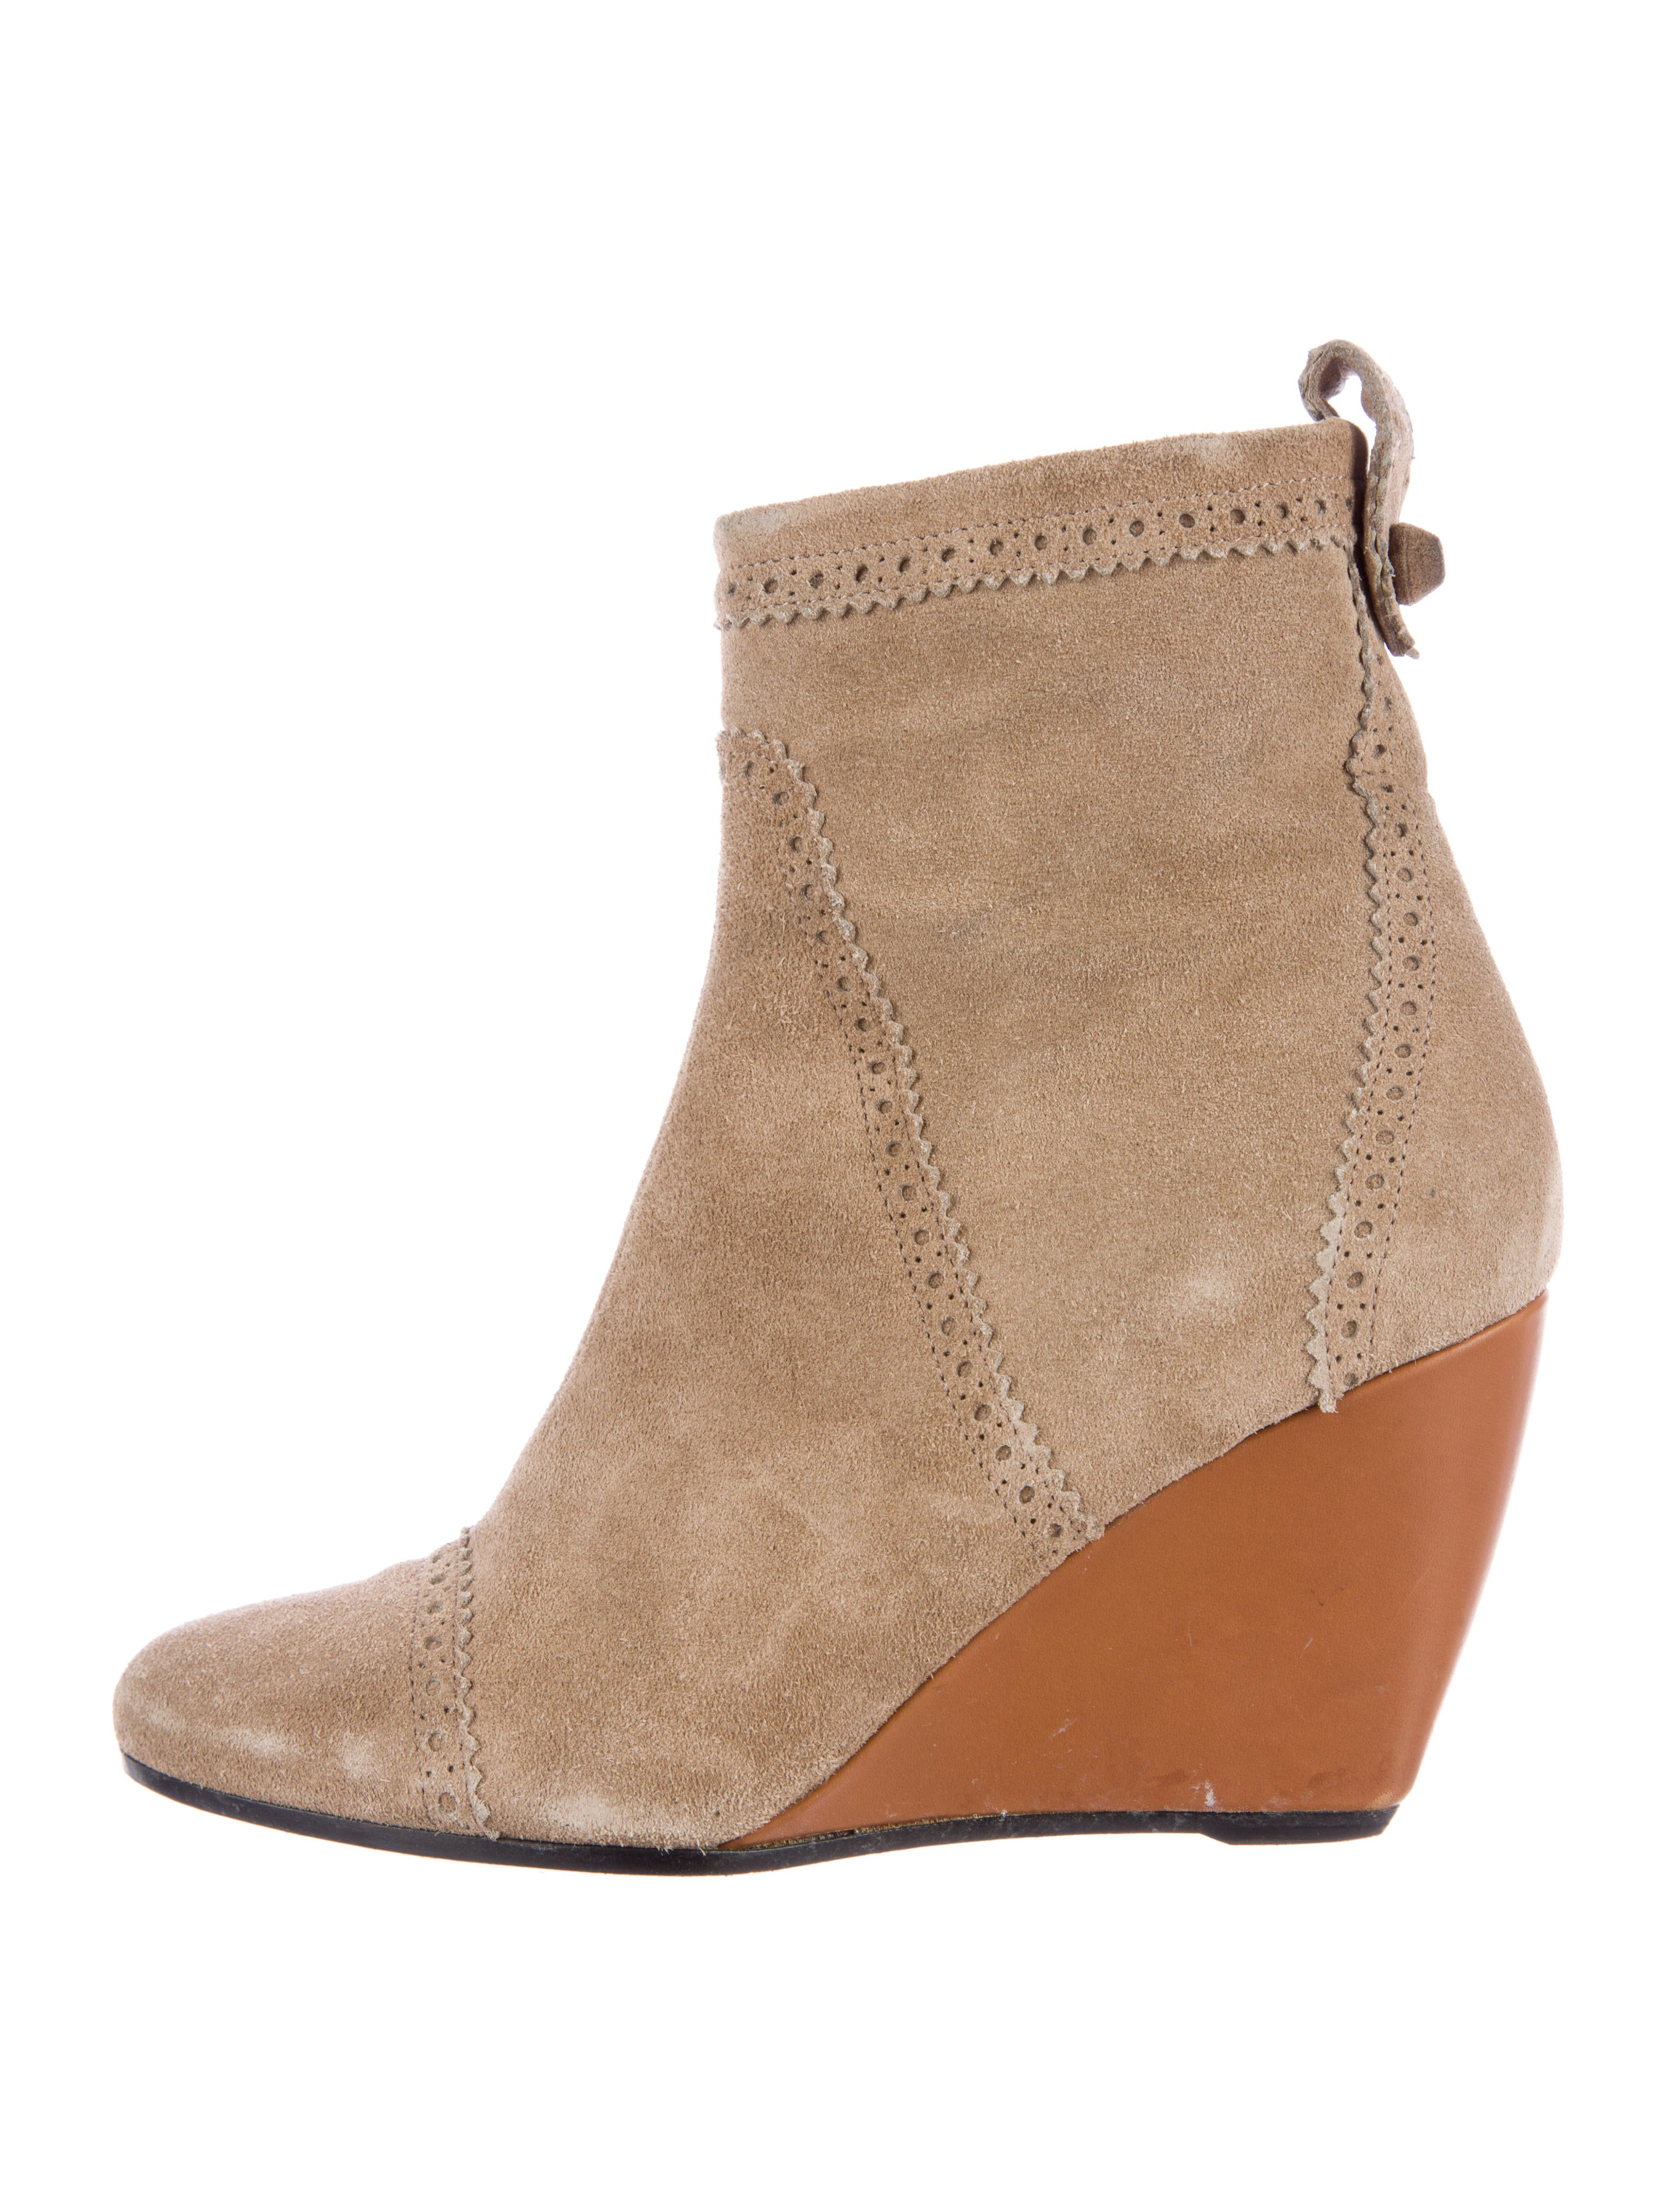 Find great deals on eBay for wedge suede ankle boots. Shop with confidence.